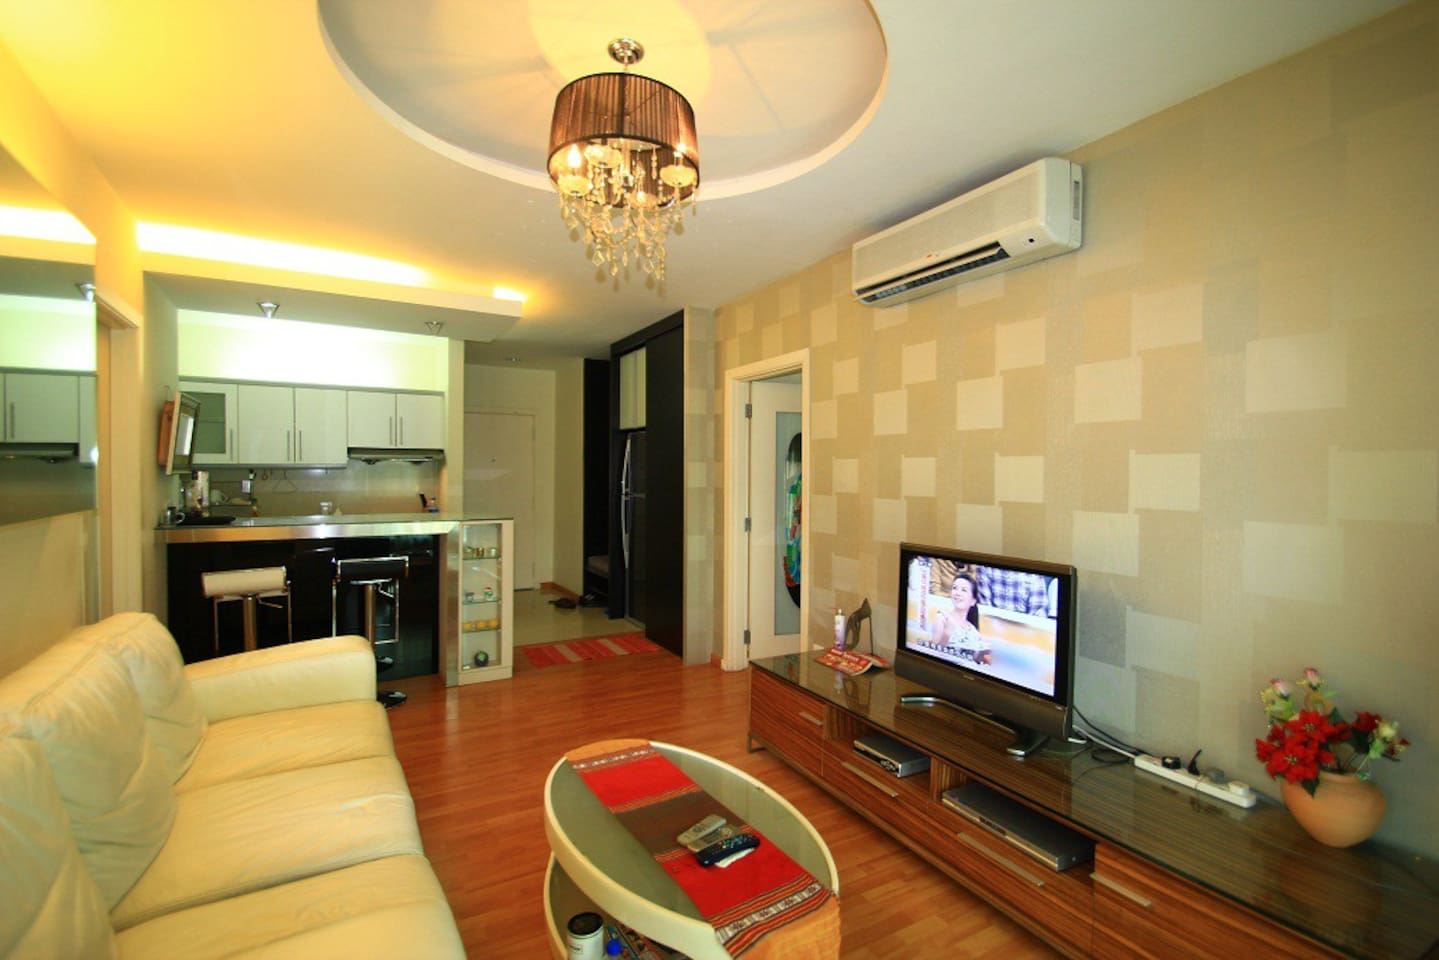 Grand living hall right when you enter from entrance. Stone in the apartment with nice & vibrant TV,under big powerful air con after a long hot day soak in Malaysia weather.